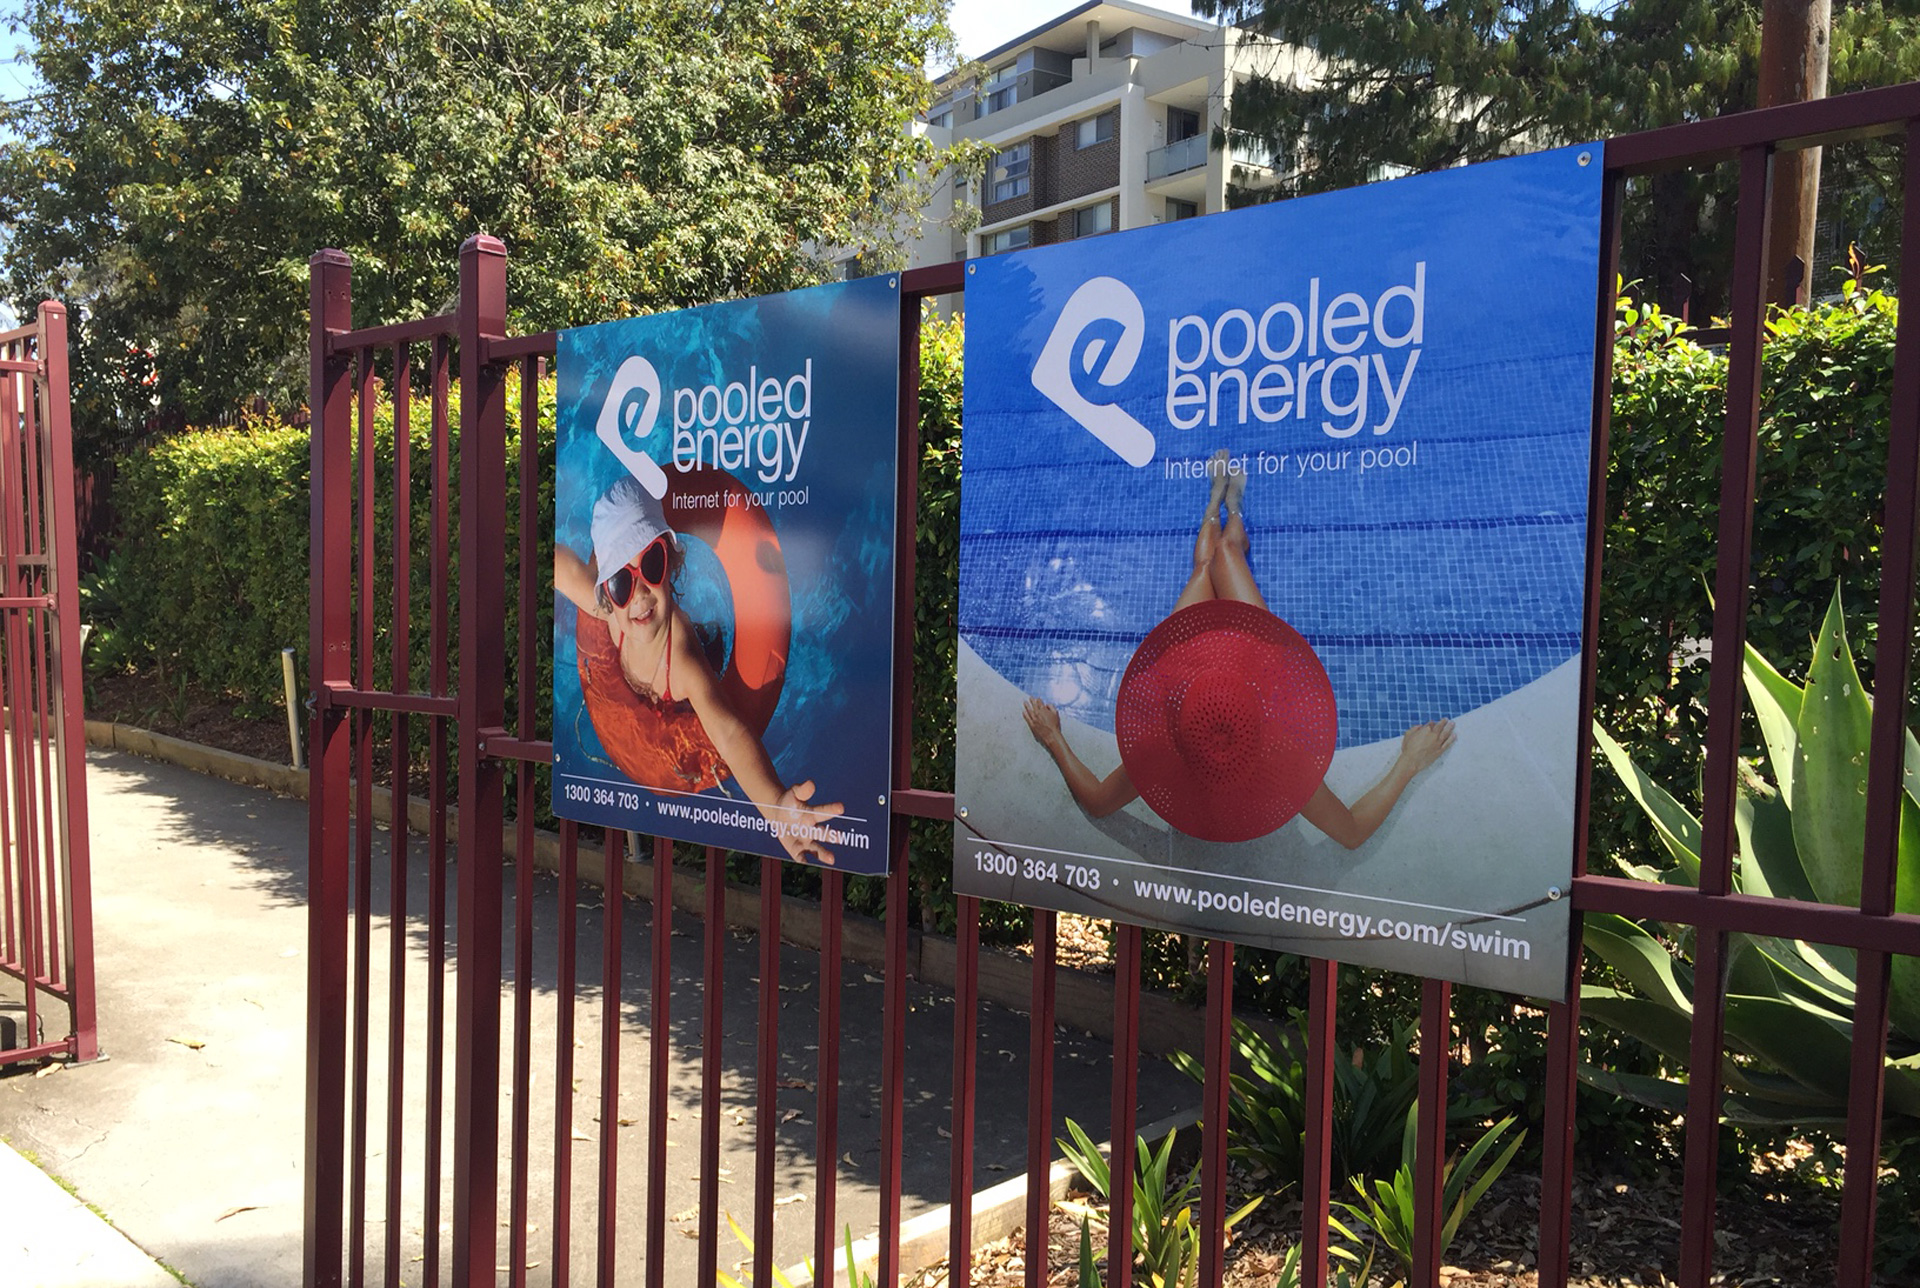 Pooled Energy Outdoor Promotional Signage